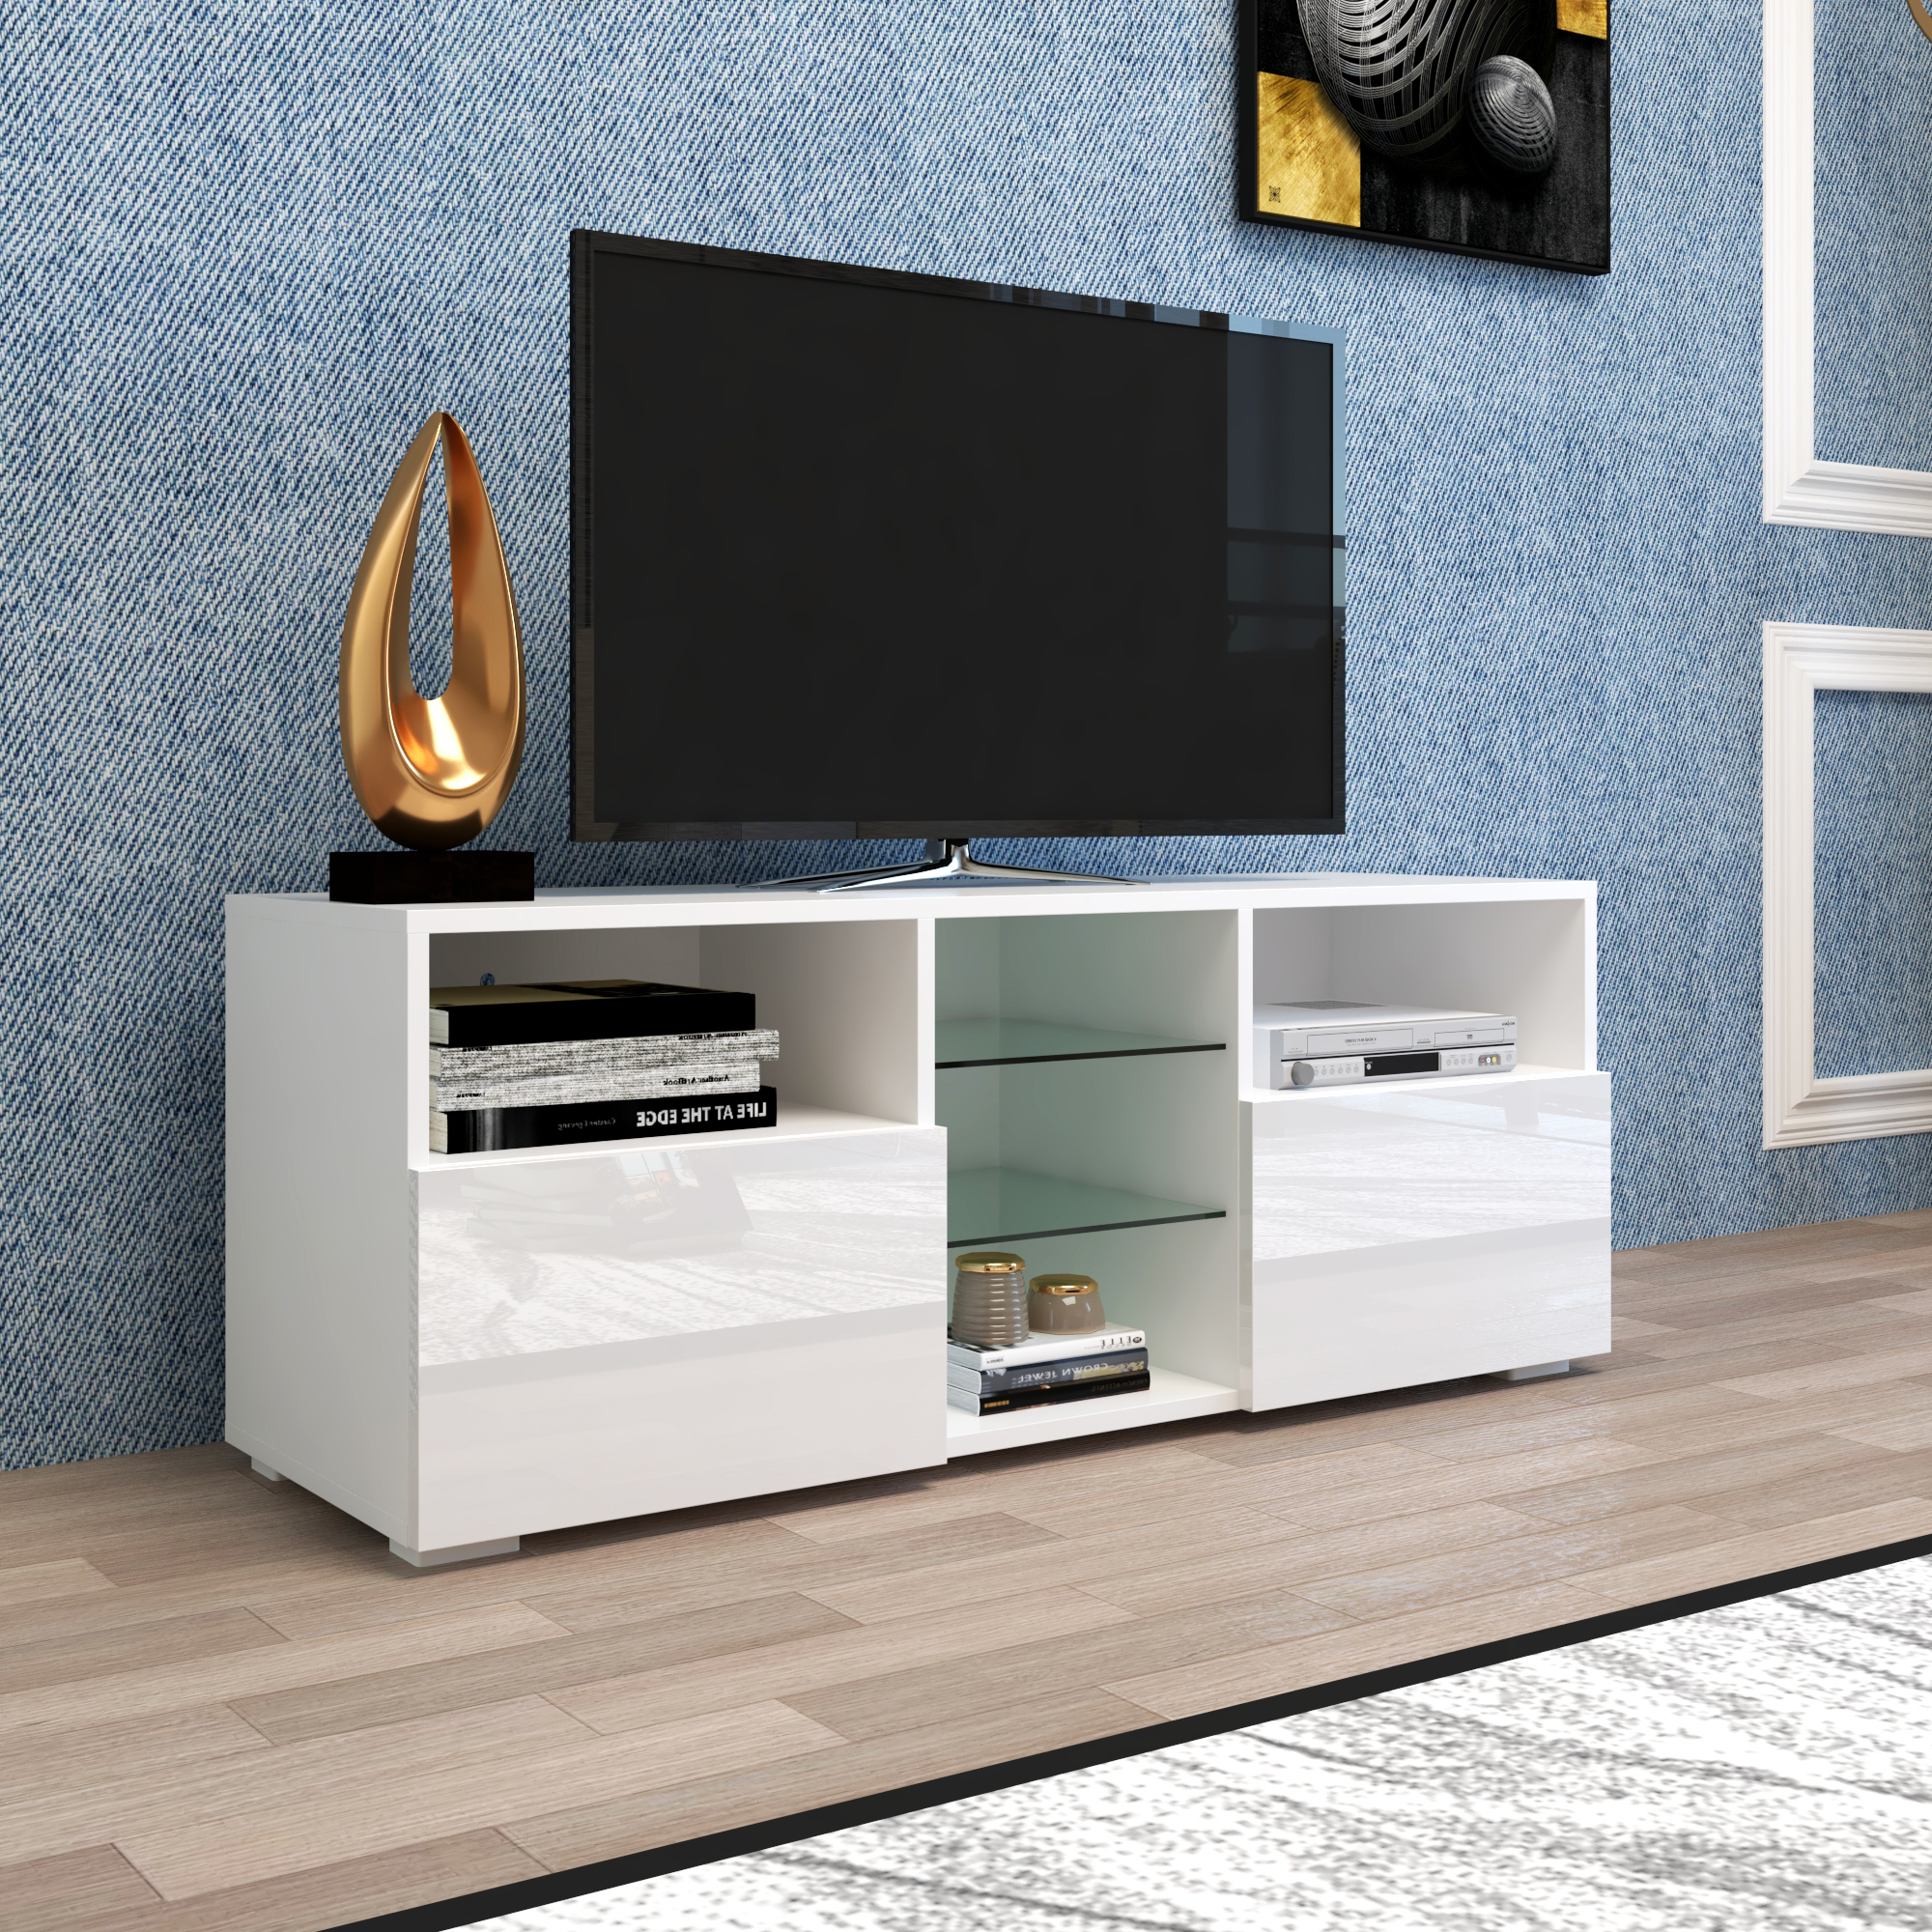 """2018 Caleah Tv Stands For Tvs Up To 65"""" For Yofe Tv Entertainment Center For Up To 65 Inch Tv, High (View 25 of 25)"""